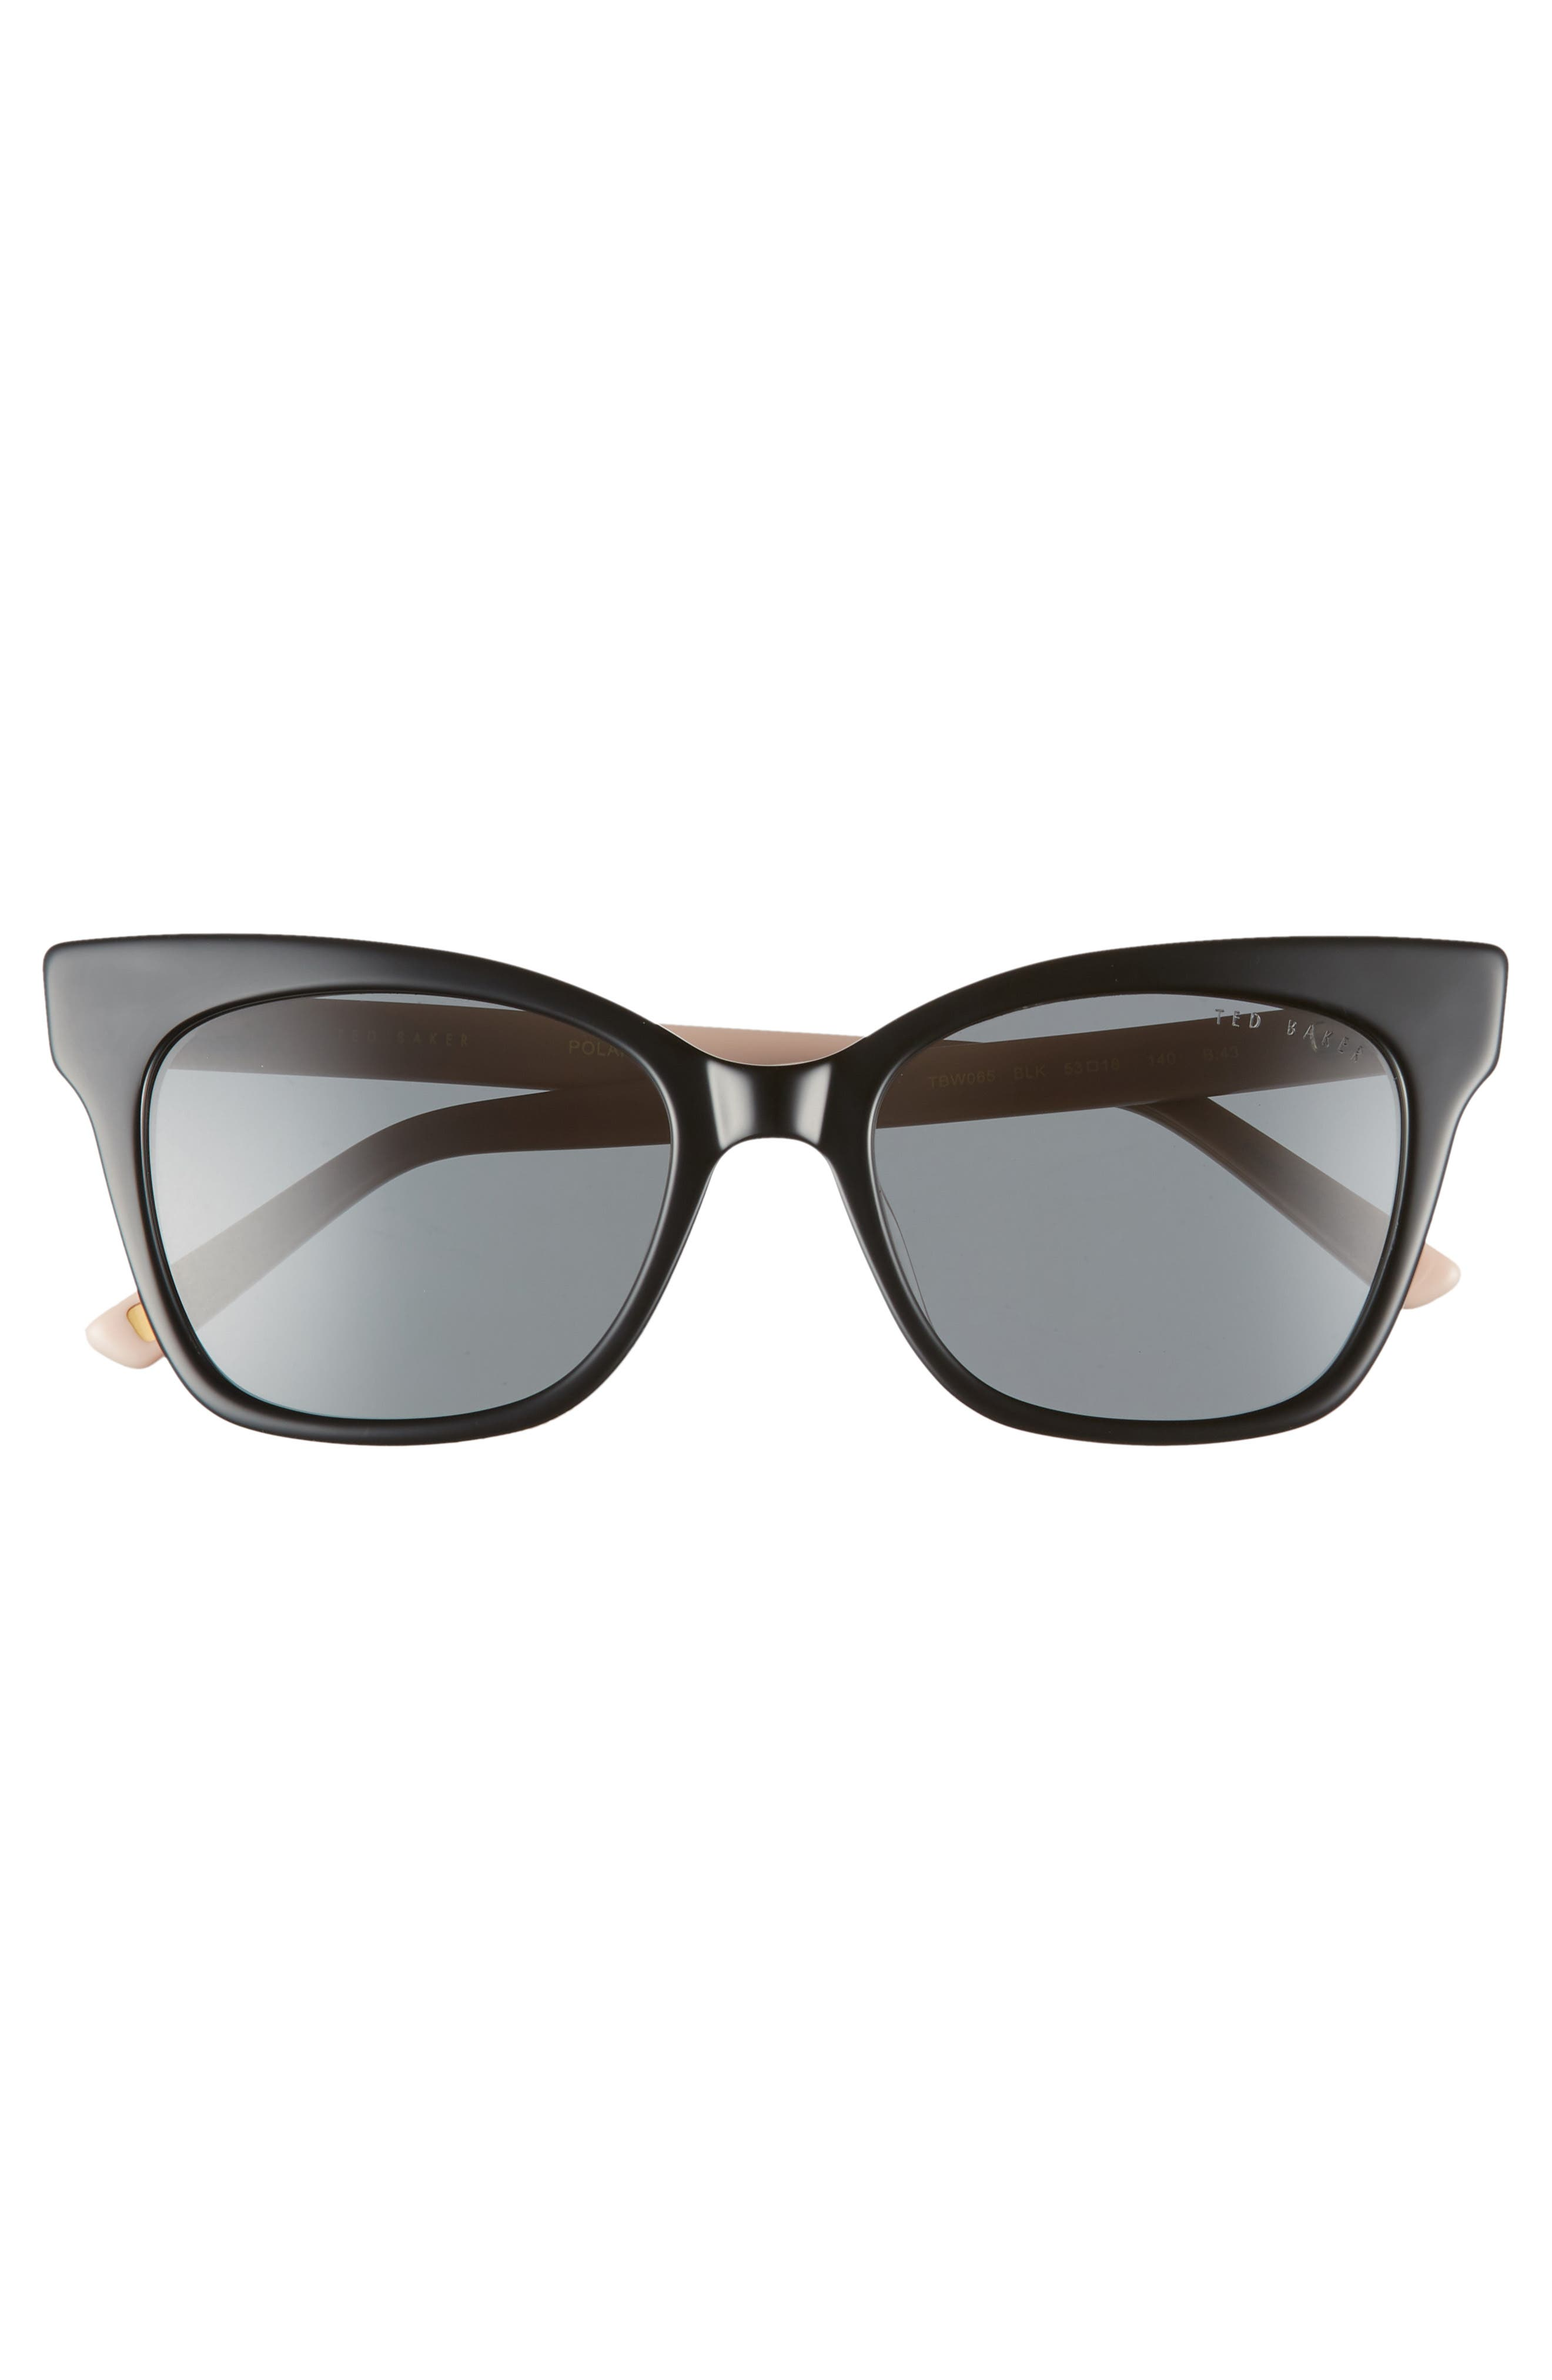 53mm Cat Eye Sunglasses,                             Alternate thumbnail 3, color,                             BLACK